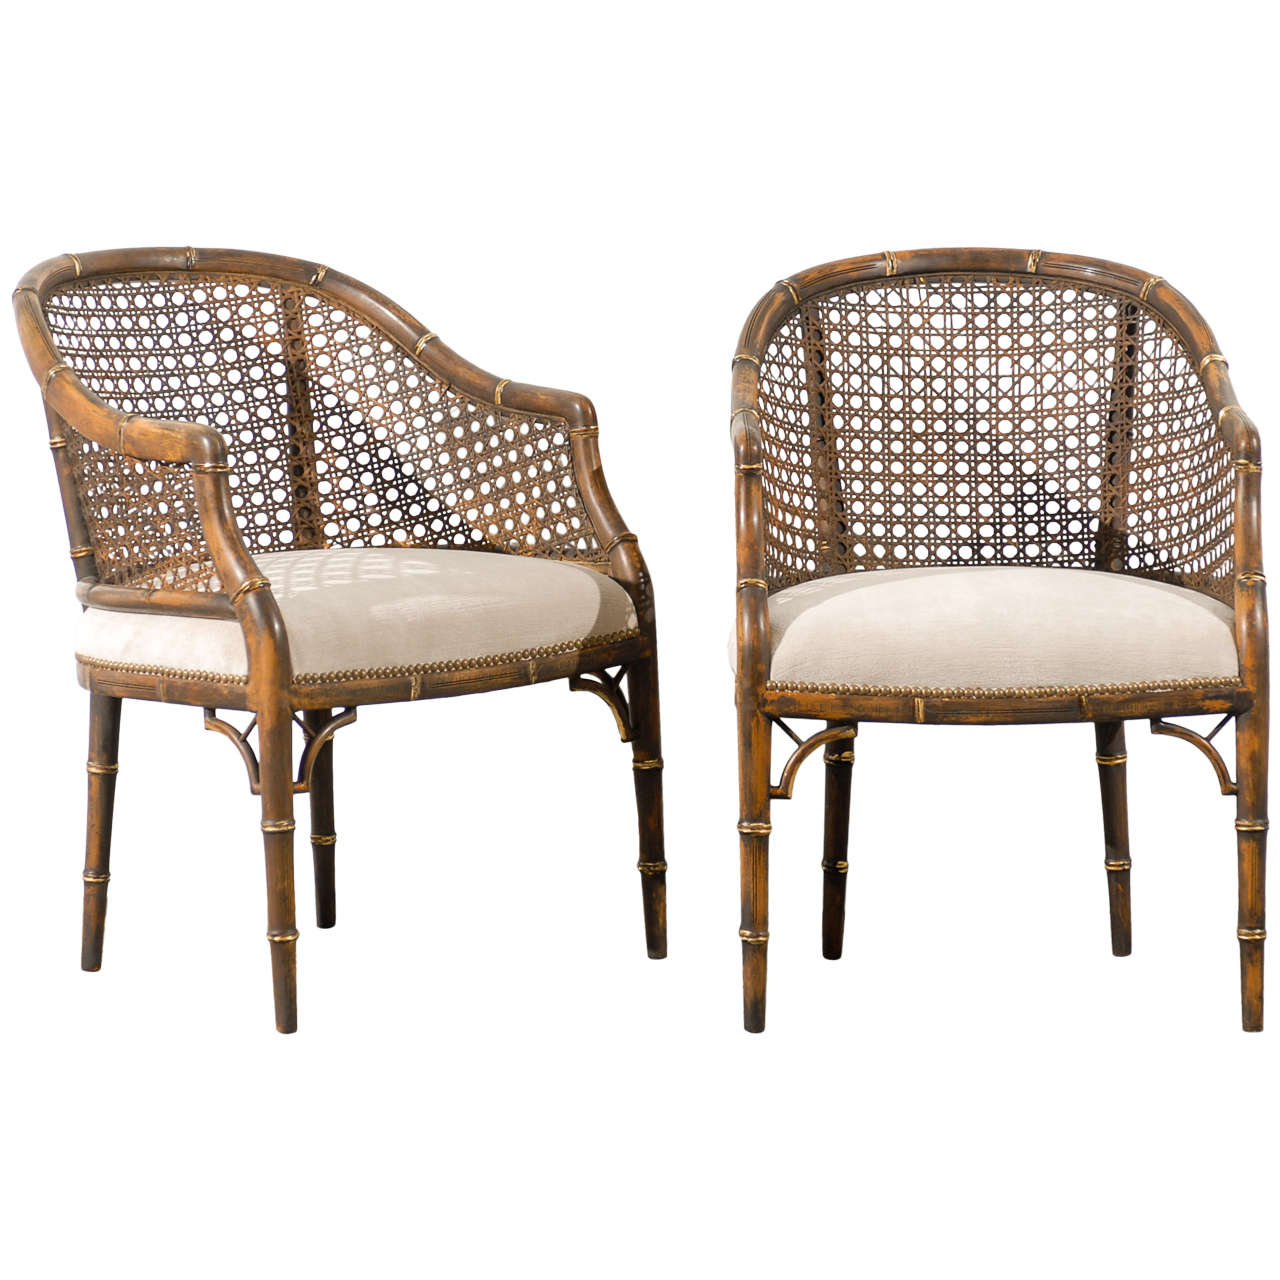 Beautiful Vintage Faux Bamboo/Cane Barrel Back Chairs   4 Available For Sale